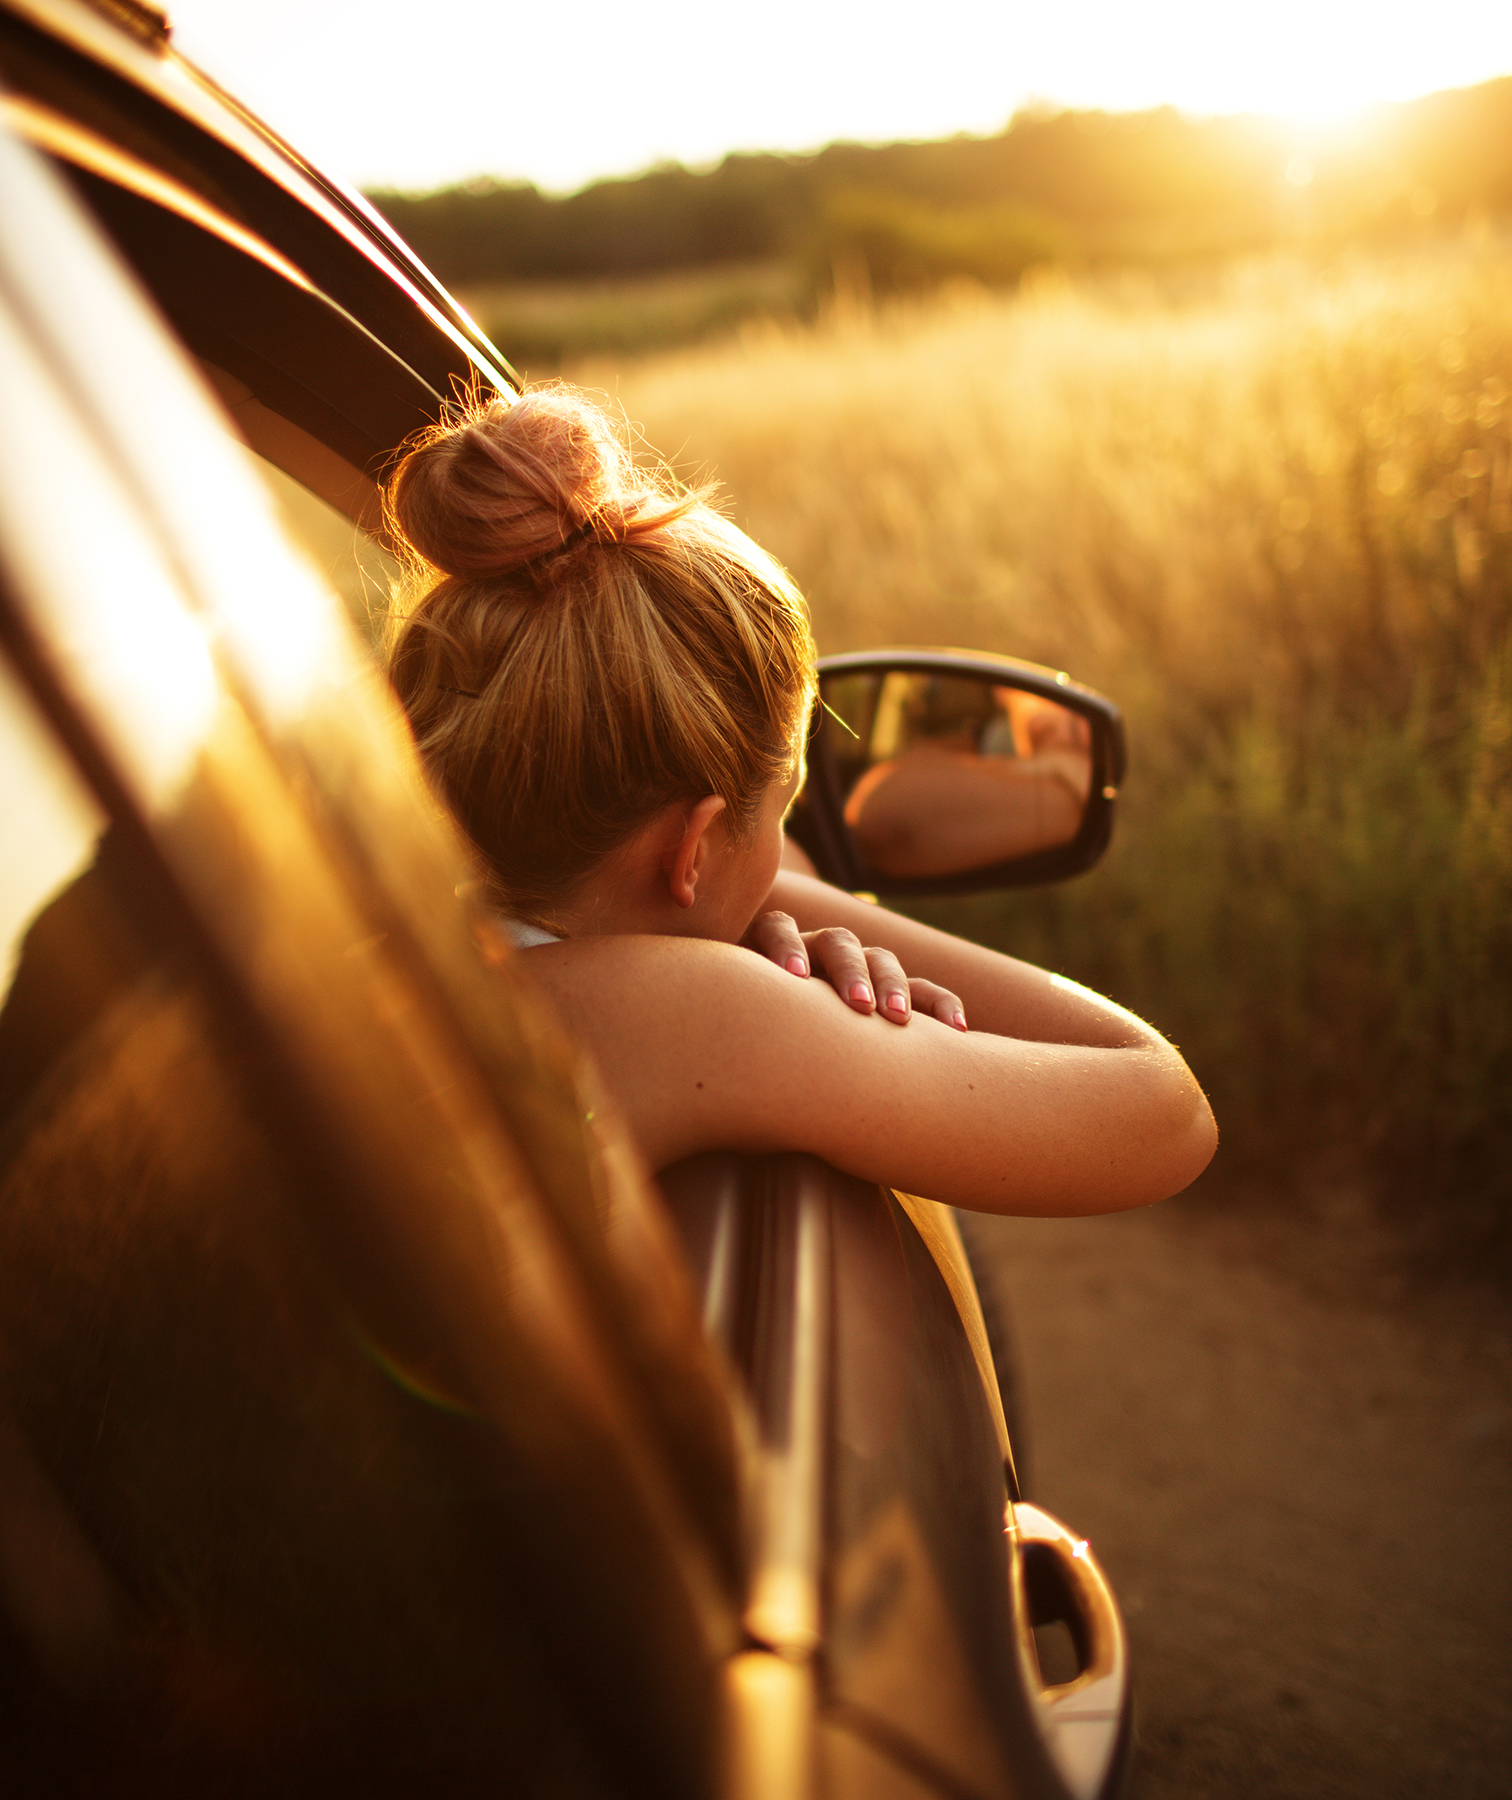 Girl leaning out of car window on road trip